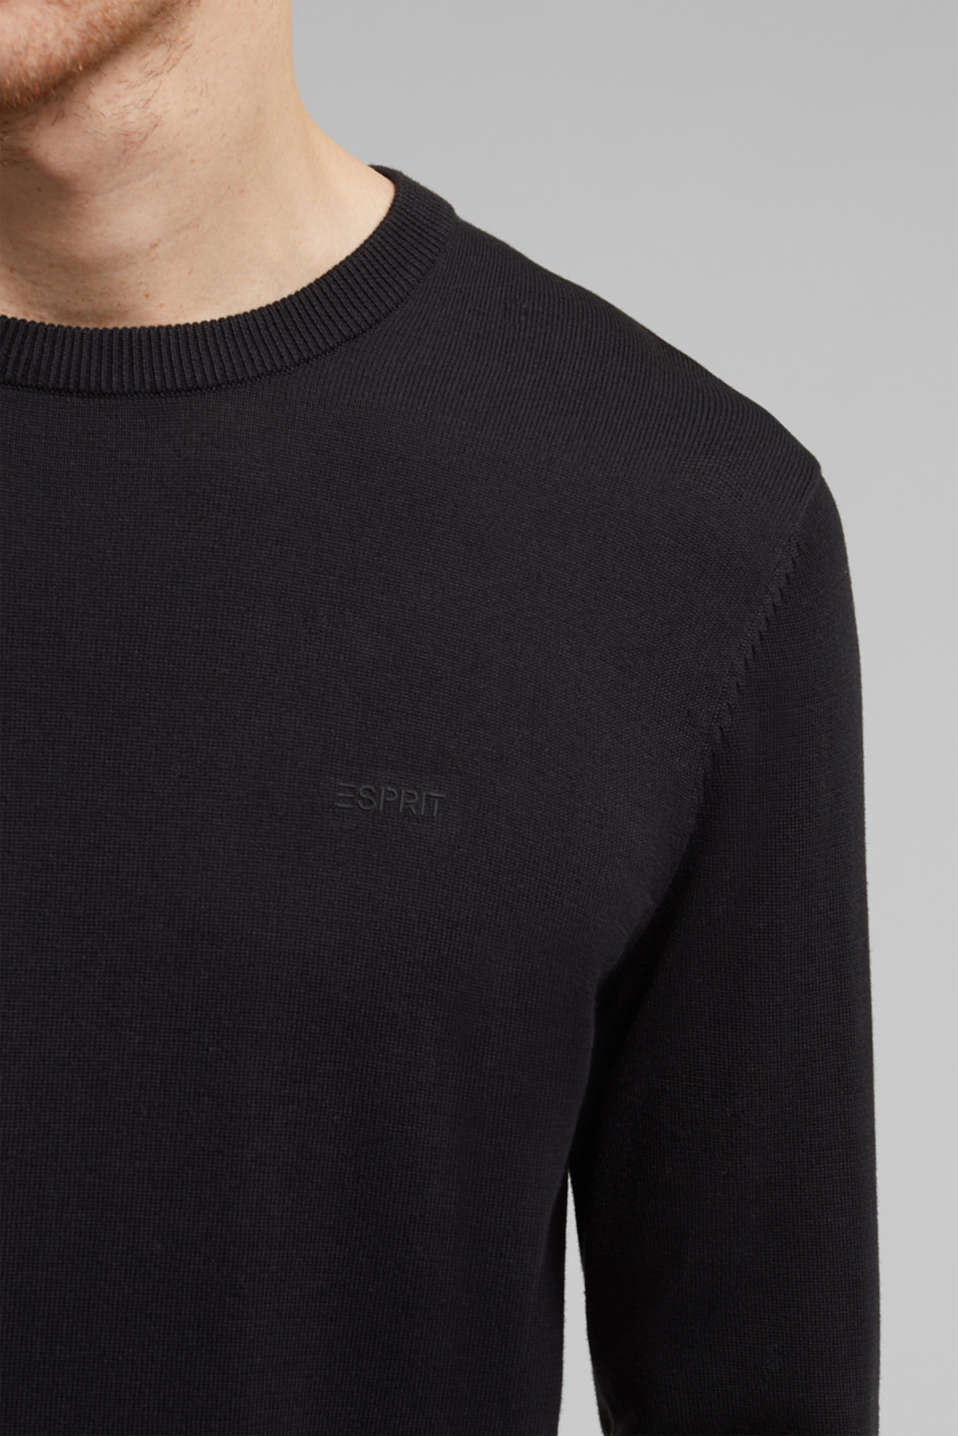 Jumper with a round neckline, 100% cotton, BLACK, detail image number 2